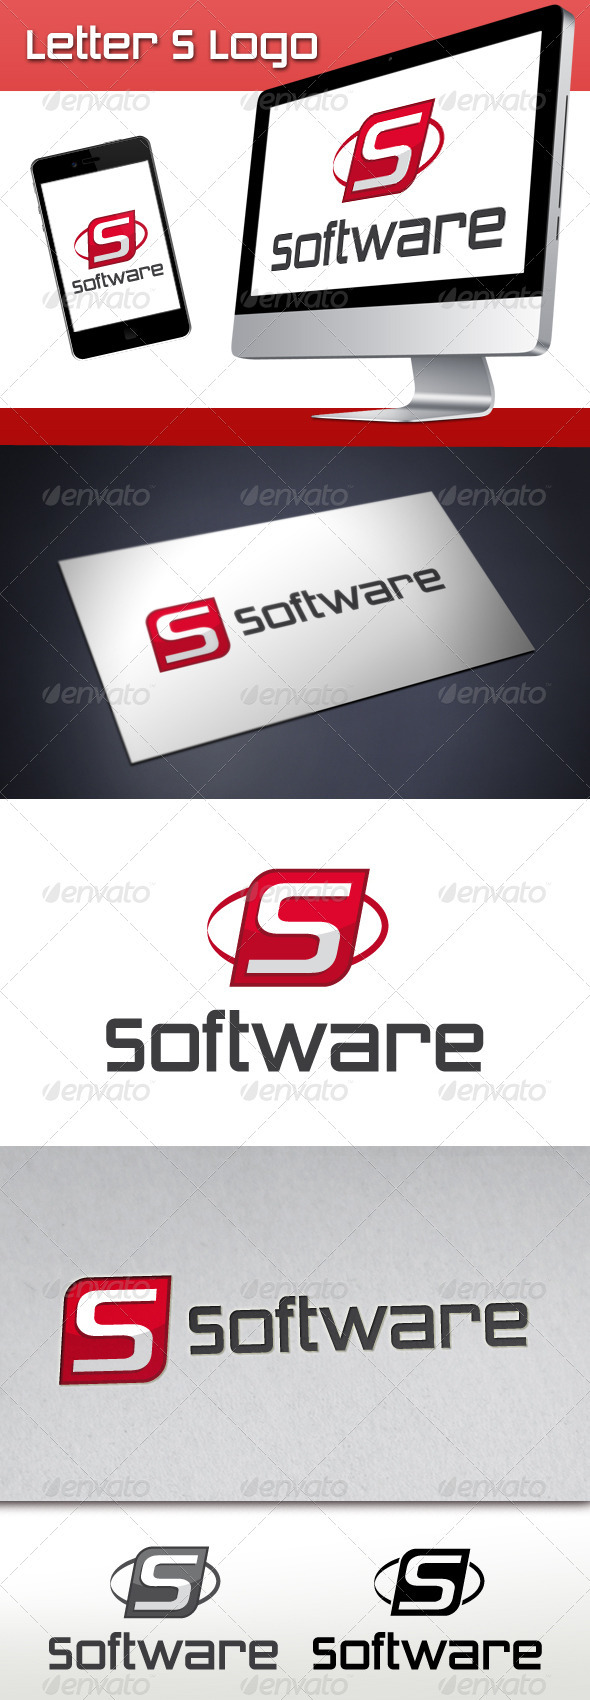 Software Brand Letter S Logo - Letters Logo Templates